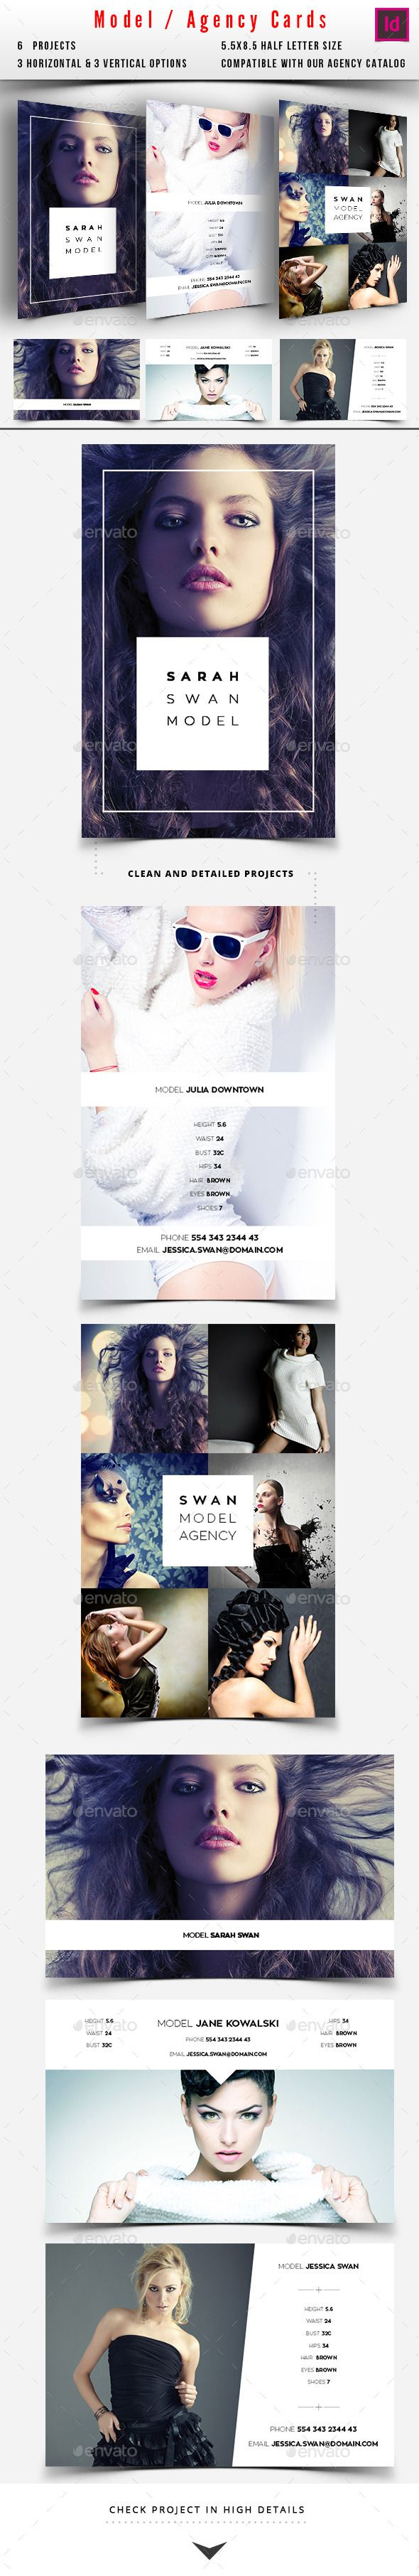 Model / Agency Comp Card — InDesign INDD #Modeling Comp Card #modeling agency • Available here → https://graphicriver.net/item/model-agency-comp-card/10335994?ref=pxcr